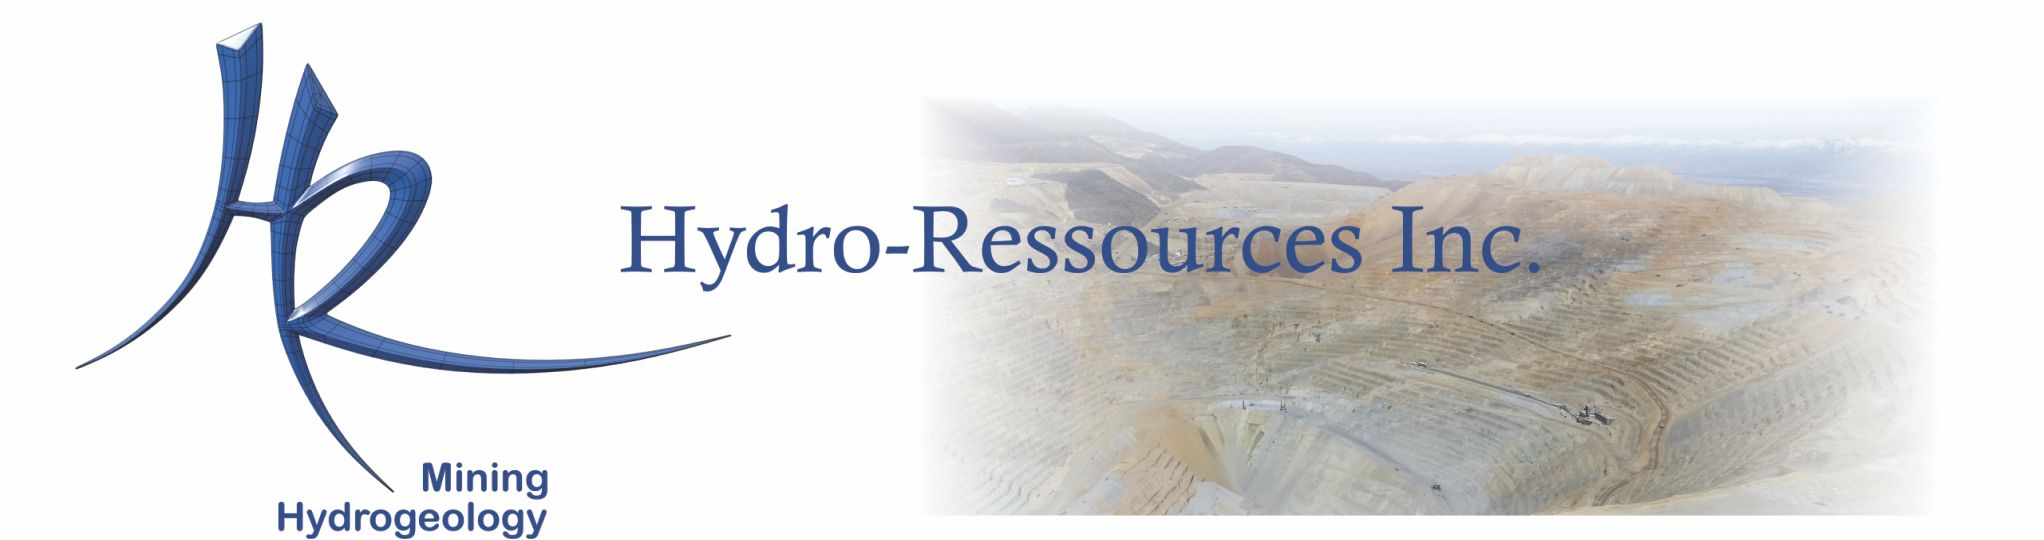 Hydro-Ressources inc.